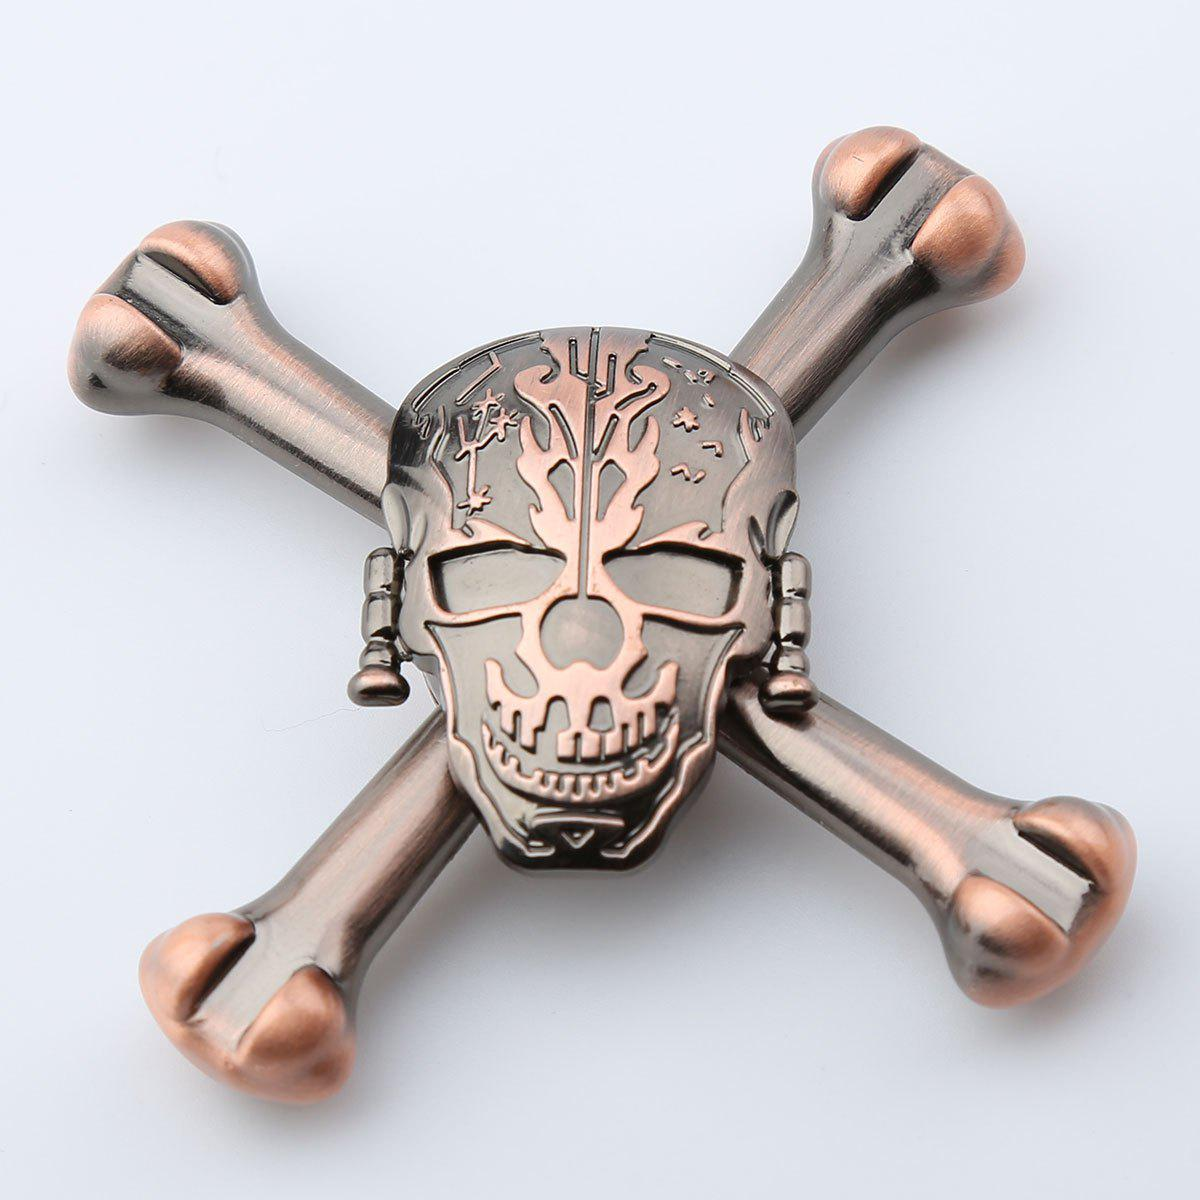 EDC Metal Skull Design Finger Toy Fidget Spinner - RED BRONZED 7.5*7.5*1.5CM